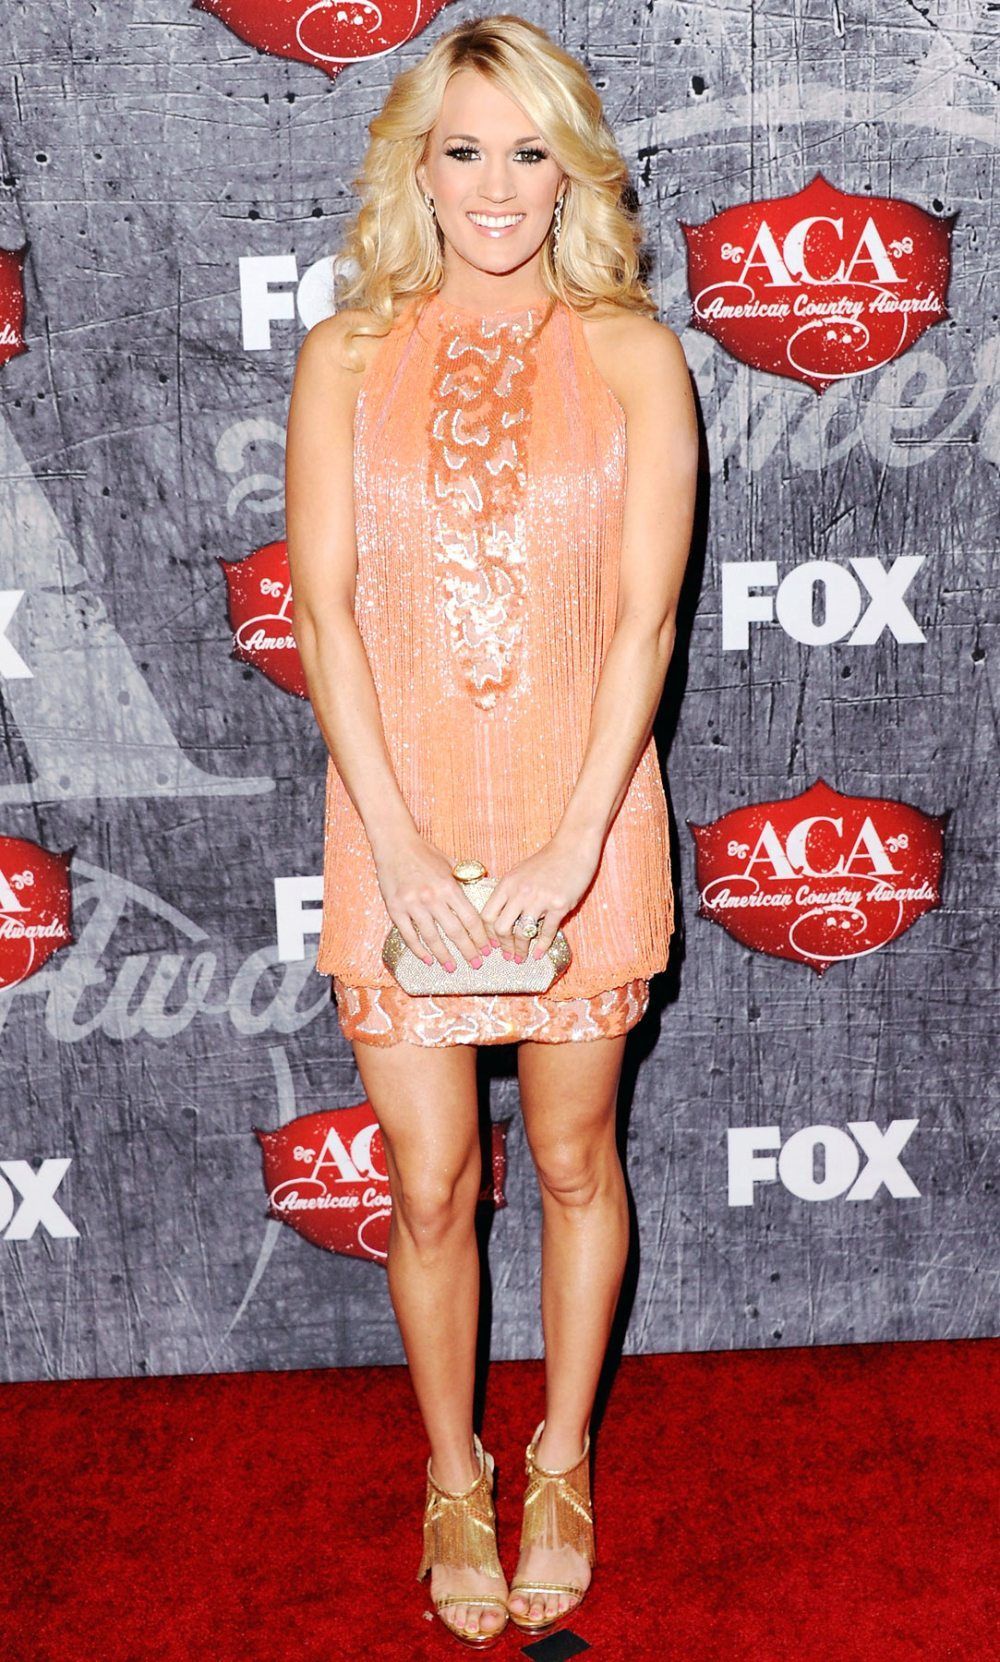 Carrie Underwood - ACM Awards 2012 Red Carpet | Carrie